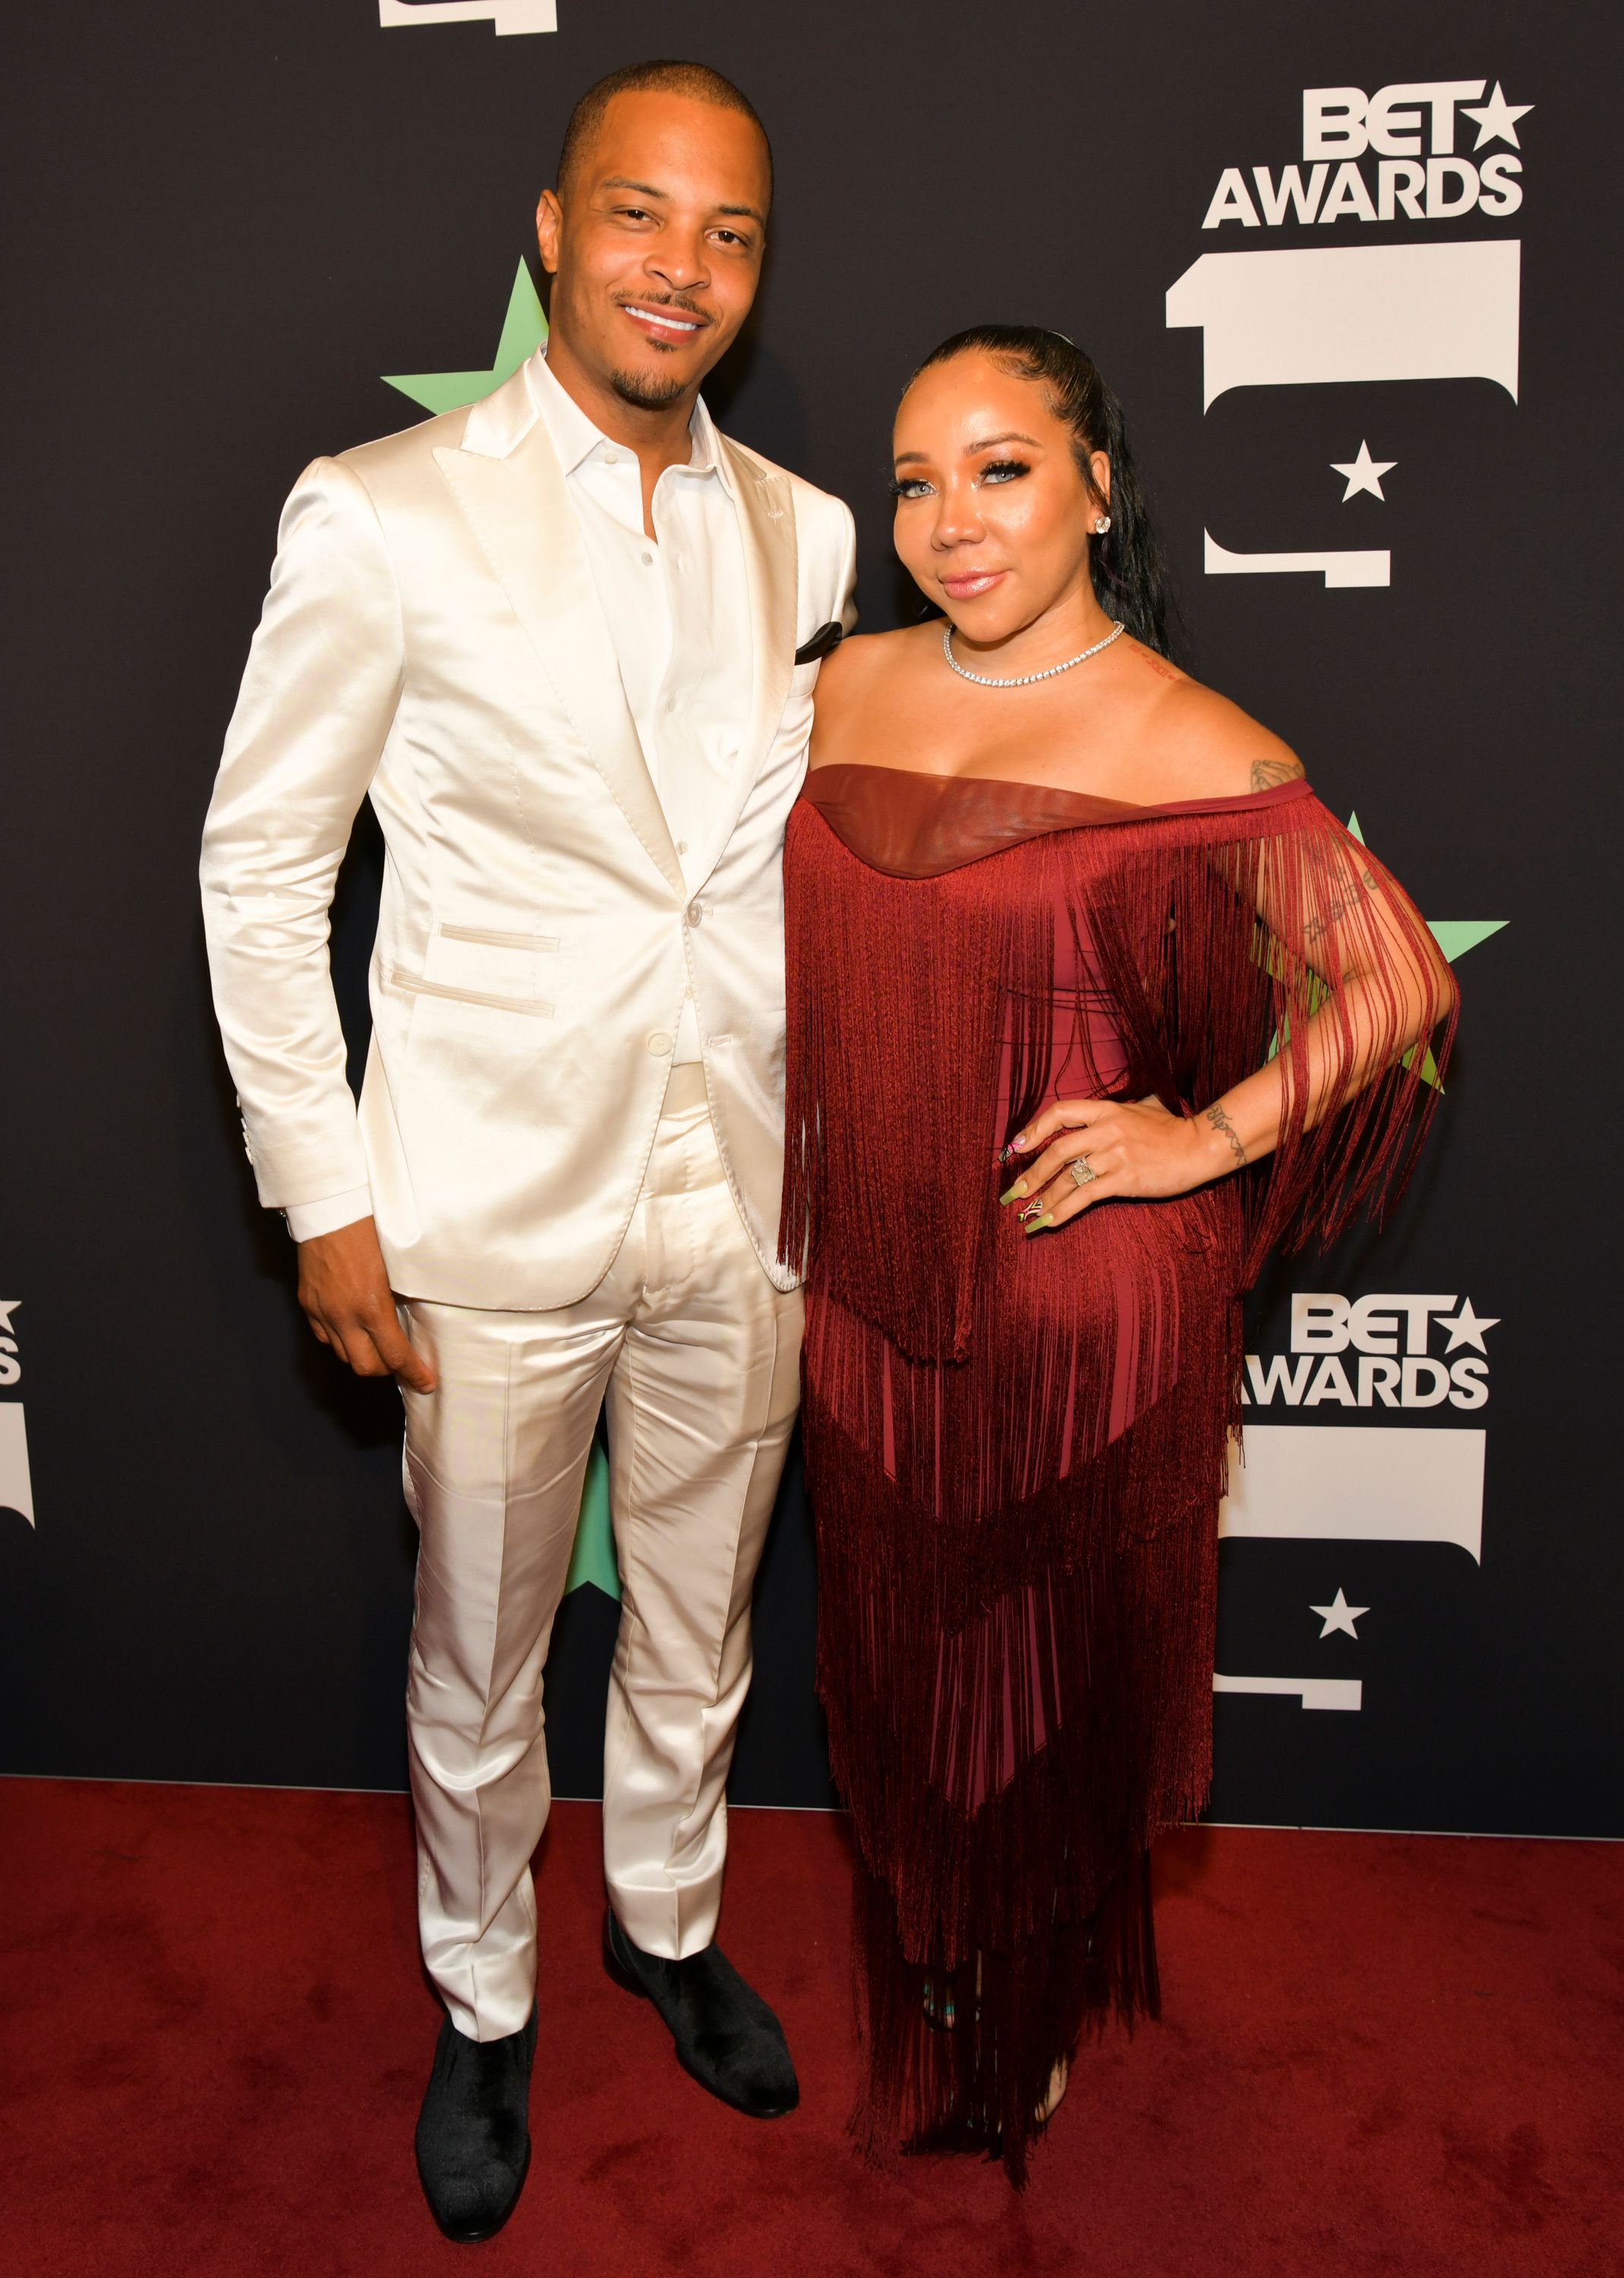 T.I. Harris and Tiny Harris during the 2019 BET Awards on June 23, 2019 in Los Angeles, California. | Source: Getty Images